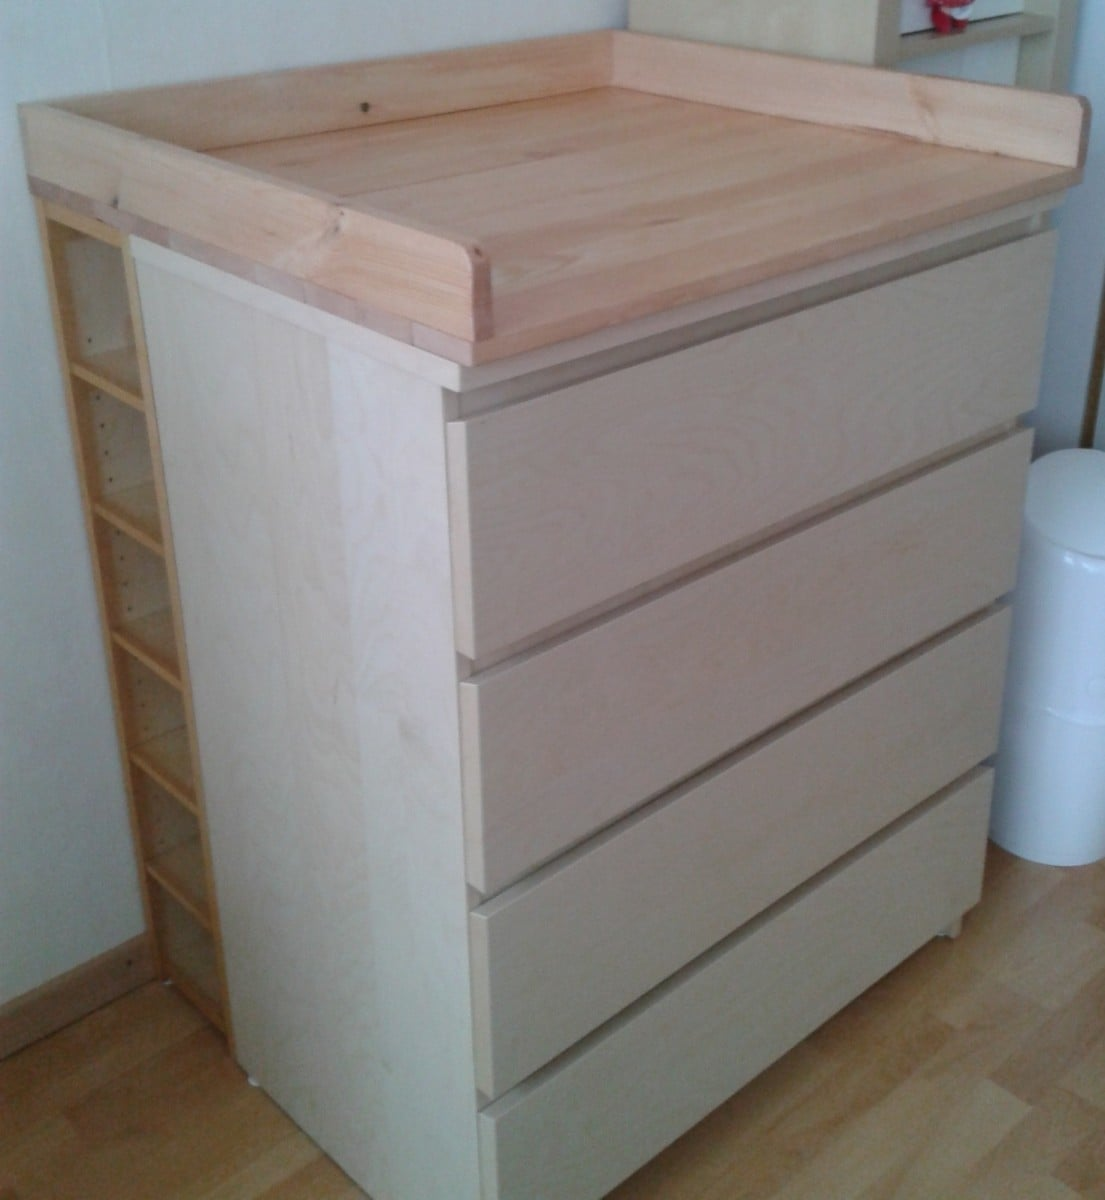 Sultan Lade Malm Benno Changing Table IKEA Hackers